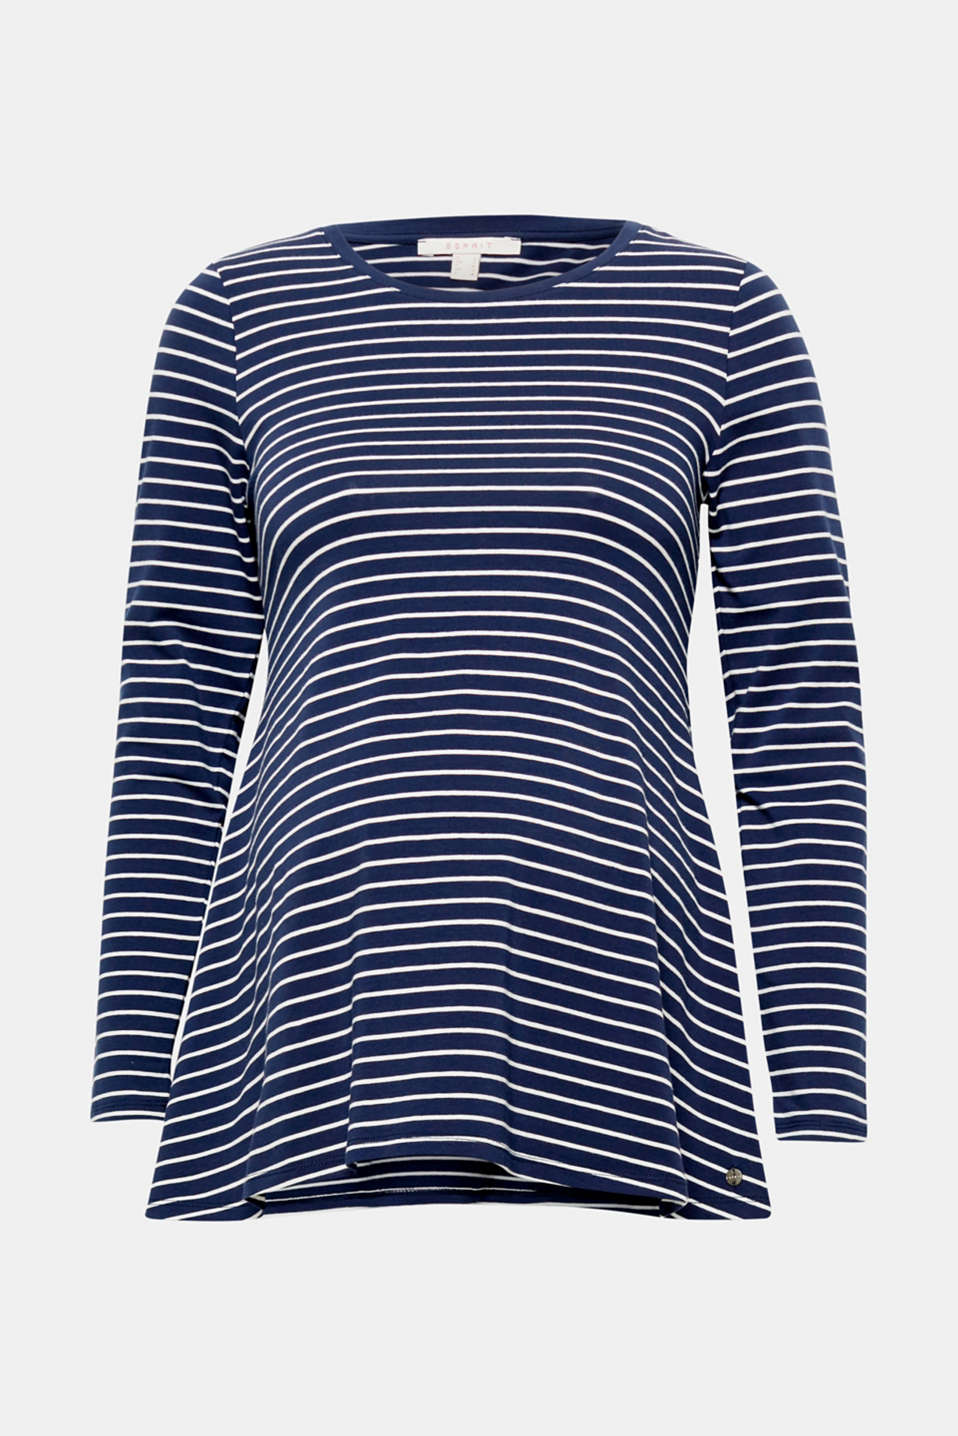 Upbeat fashion fave: the nautical stripes and flared silhouette make this long sleeve tee mega trendy!